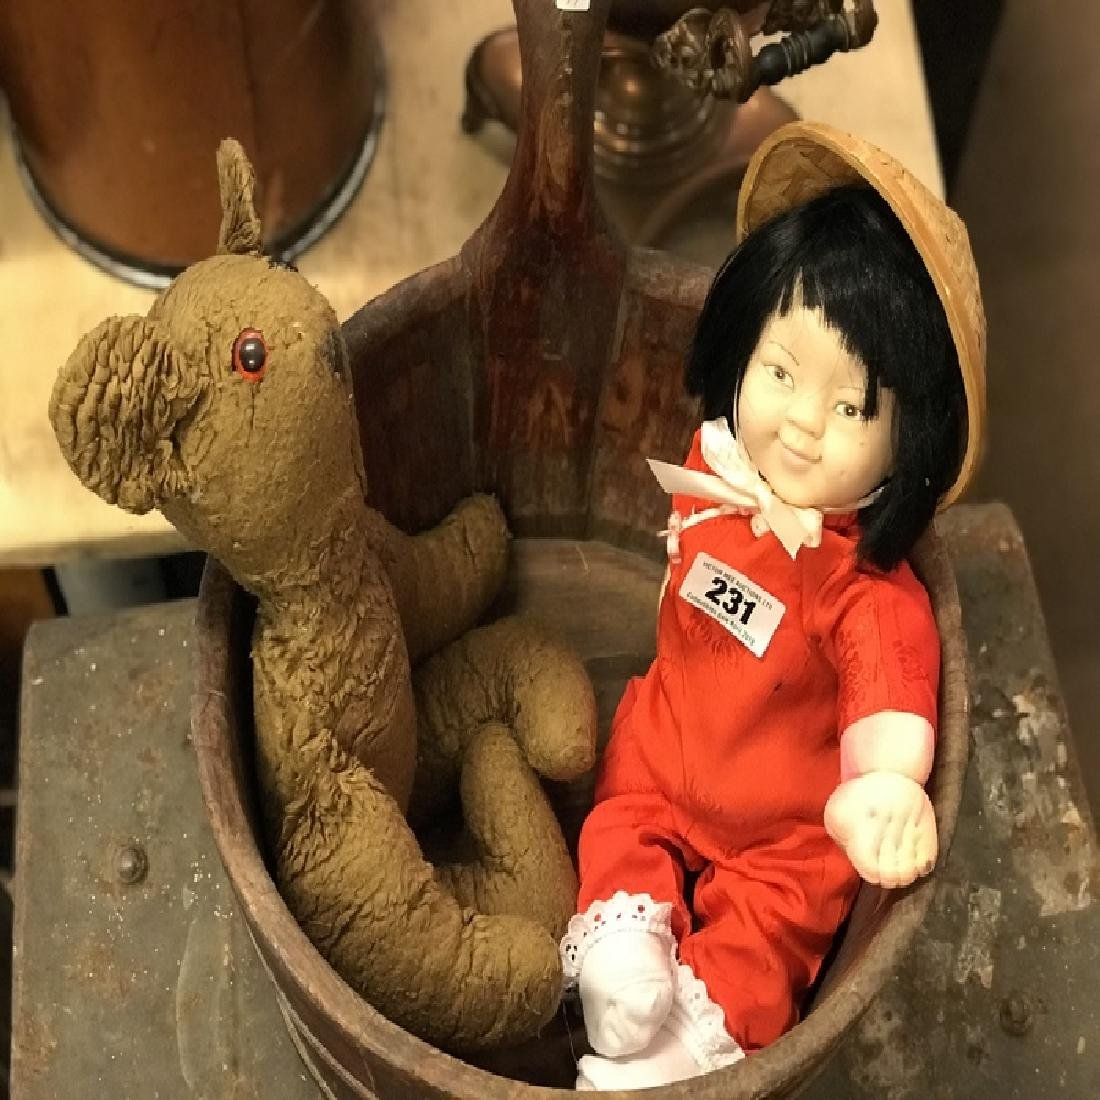 Vintage child's teddy bear and doll.